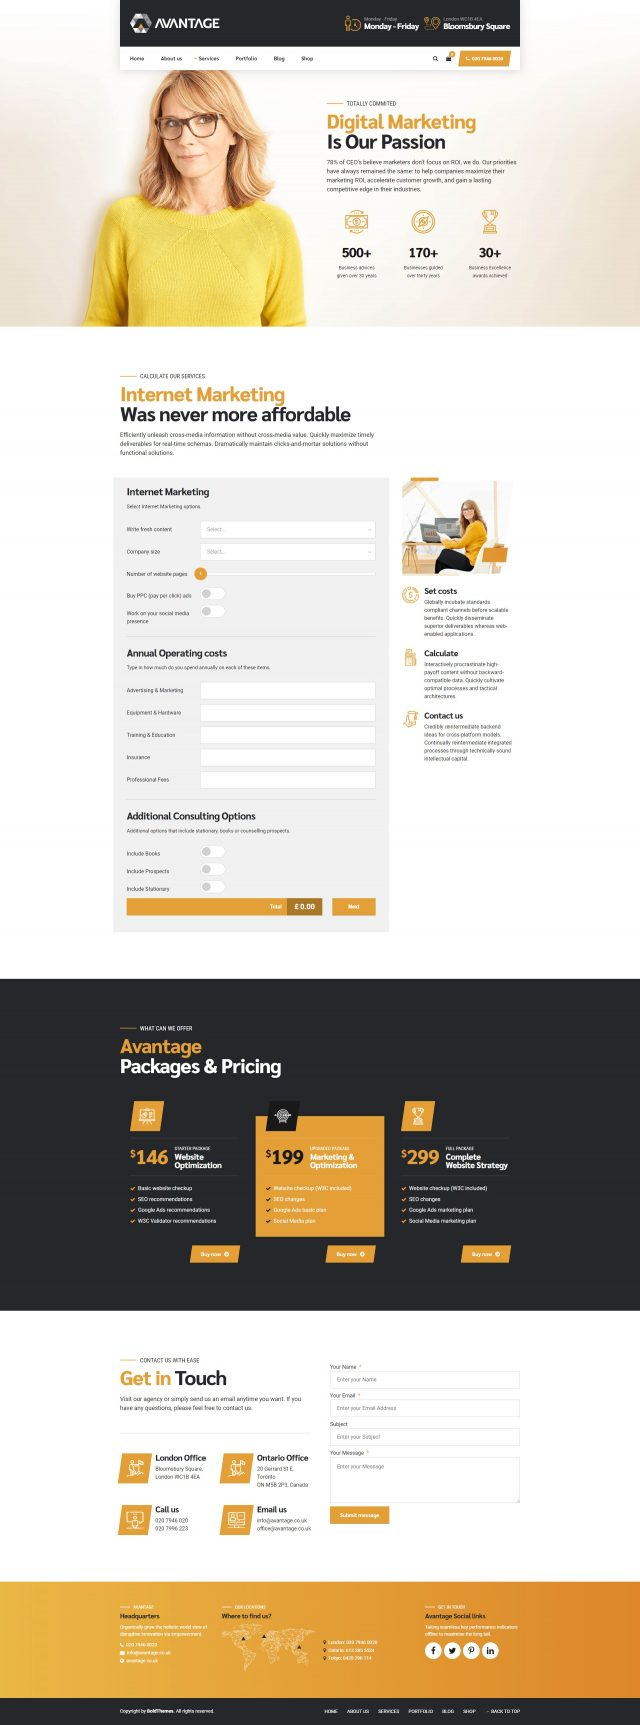 http://cost-calculator.bold-themes.com/new-main-demo/wp-content/uploads/sites/2/2019/11/avantage-2-640x1725.jpg